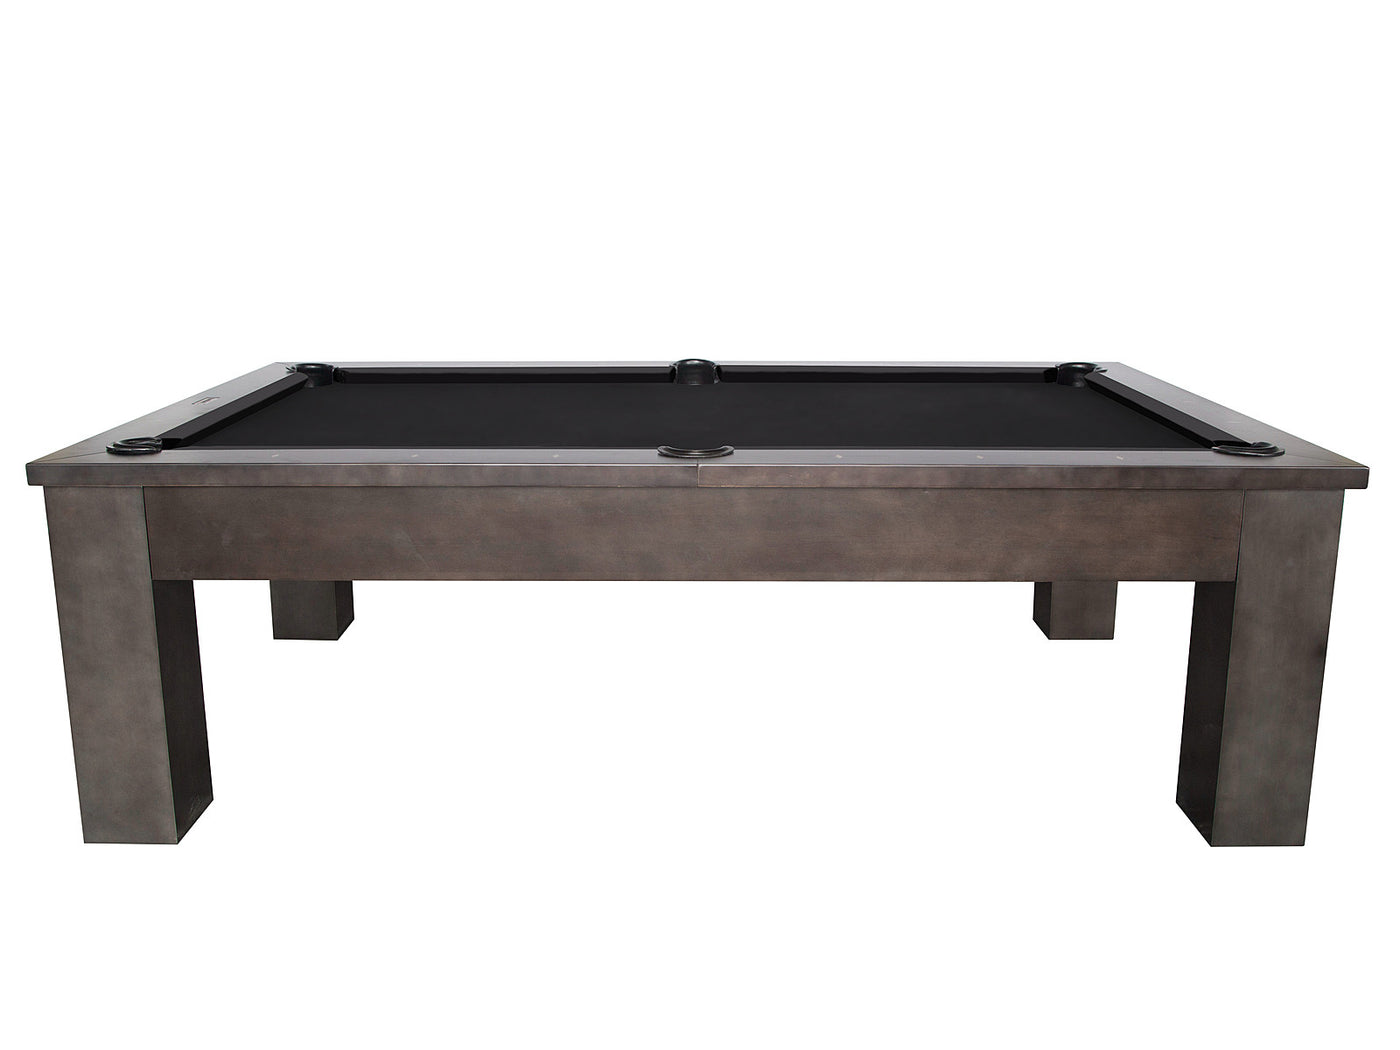 Plank and hide fulton pool table robbies billiards plank and hide fulton pool table slate side stock geotapseo Gallery